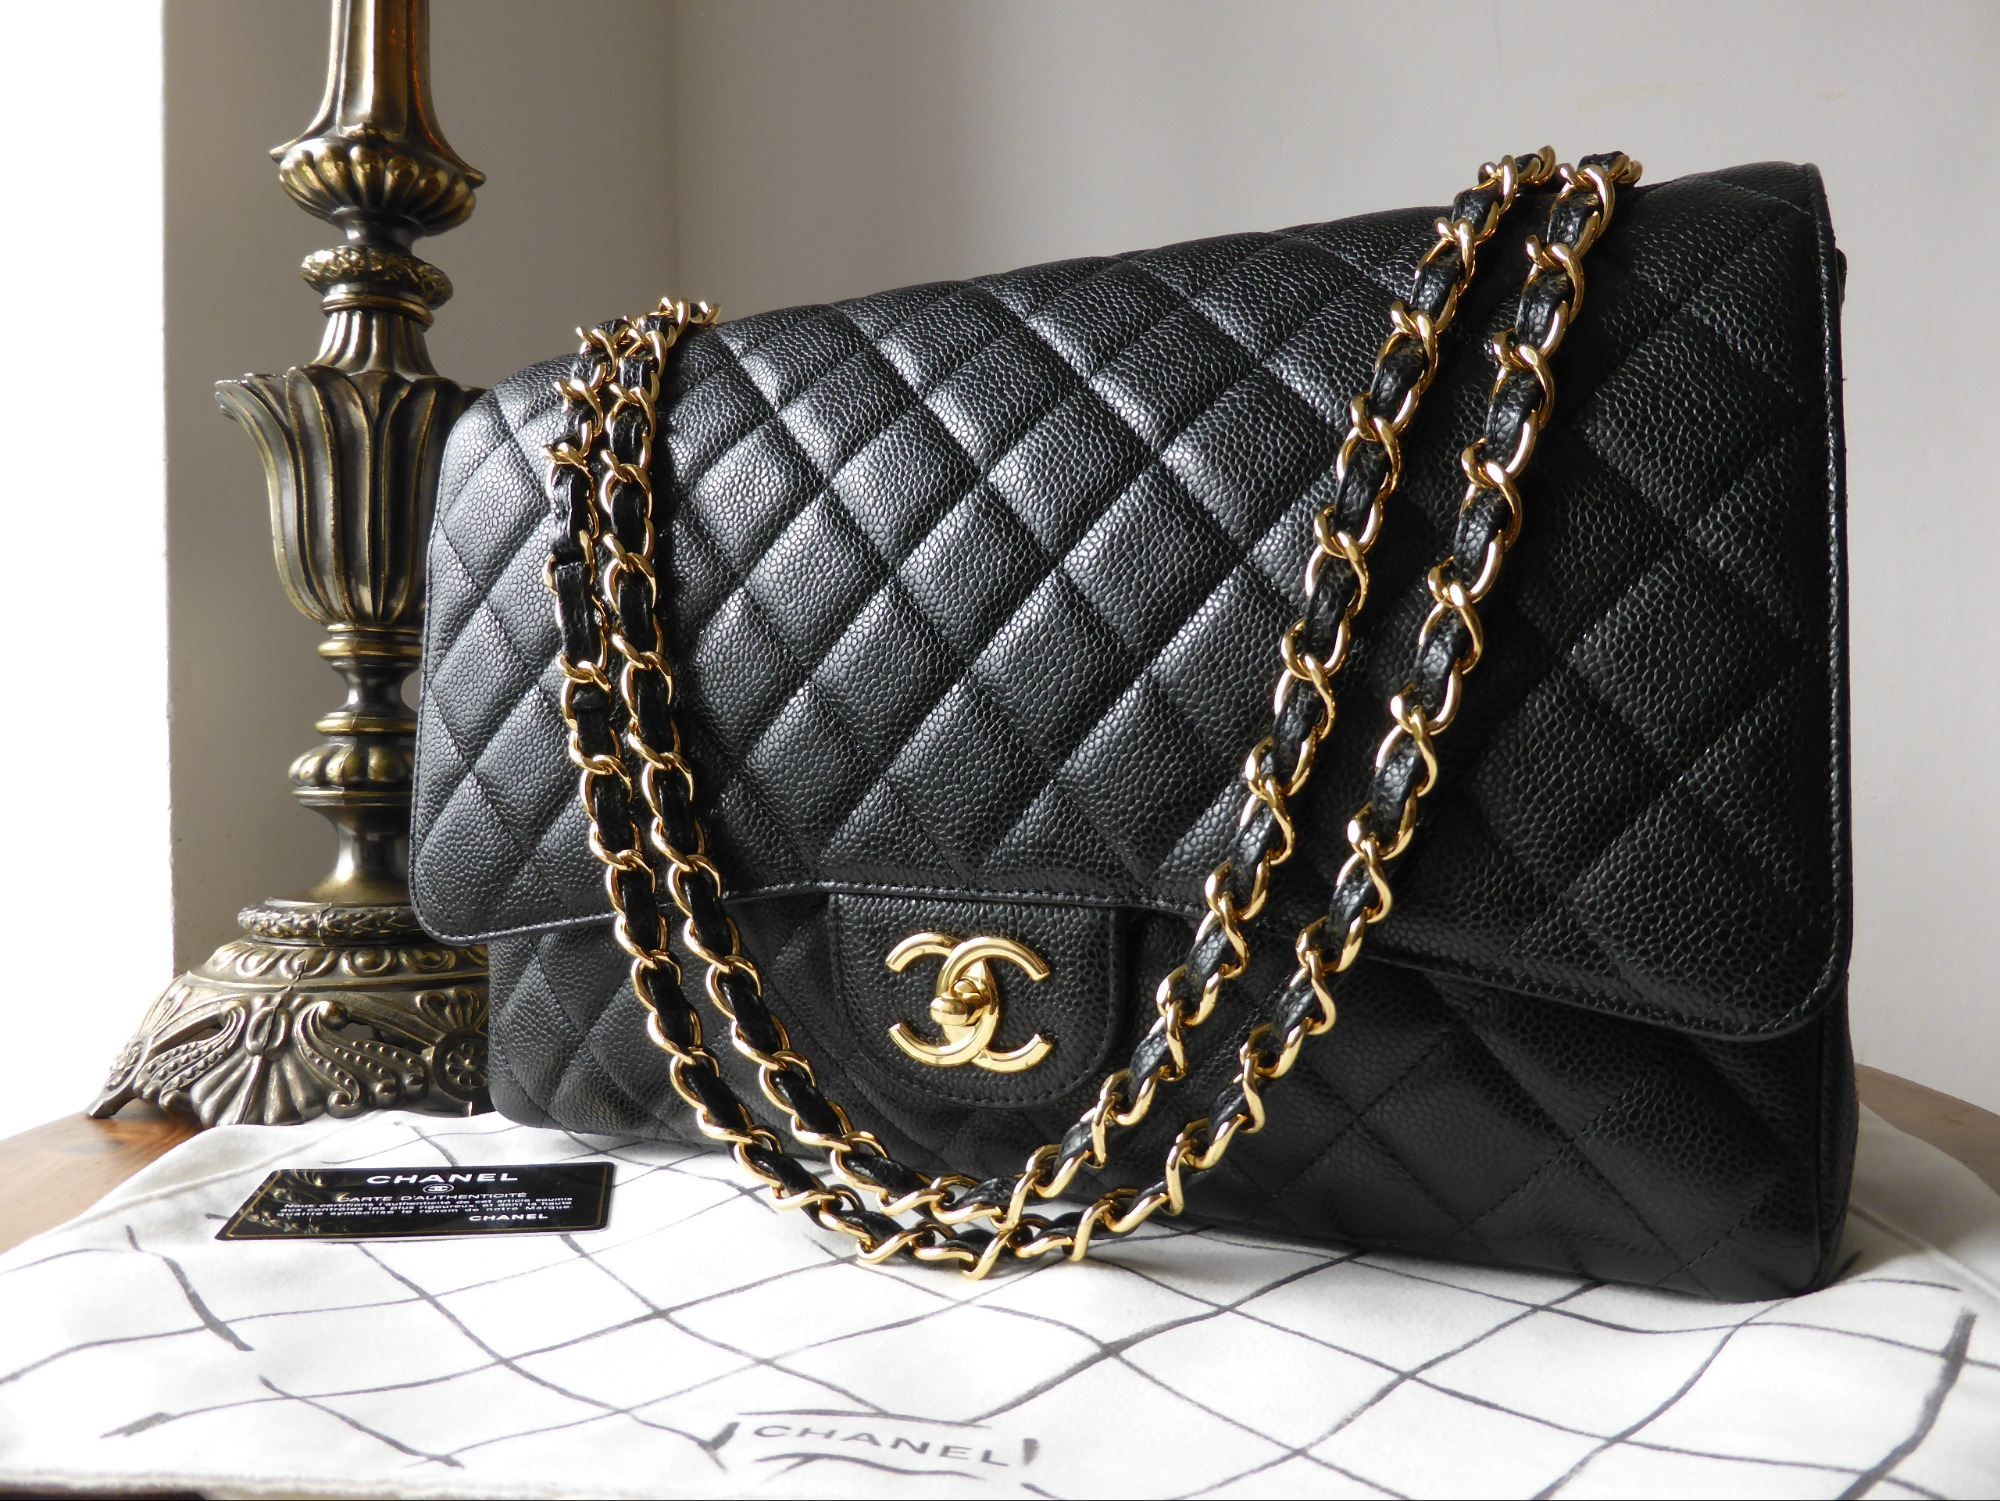 832428a22ca230 Chanel Timeless Classic 2.55 Maxi Flap Bag in Black Caviar with Gold  Hardware > http